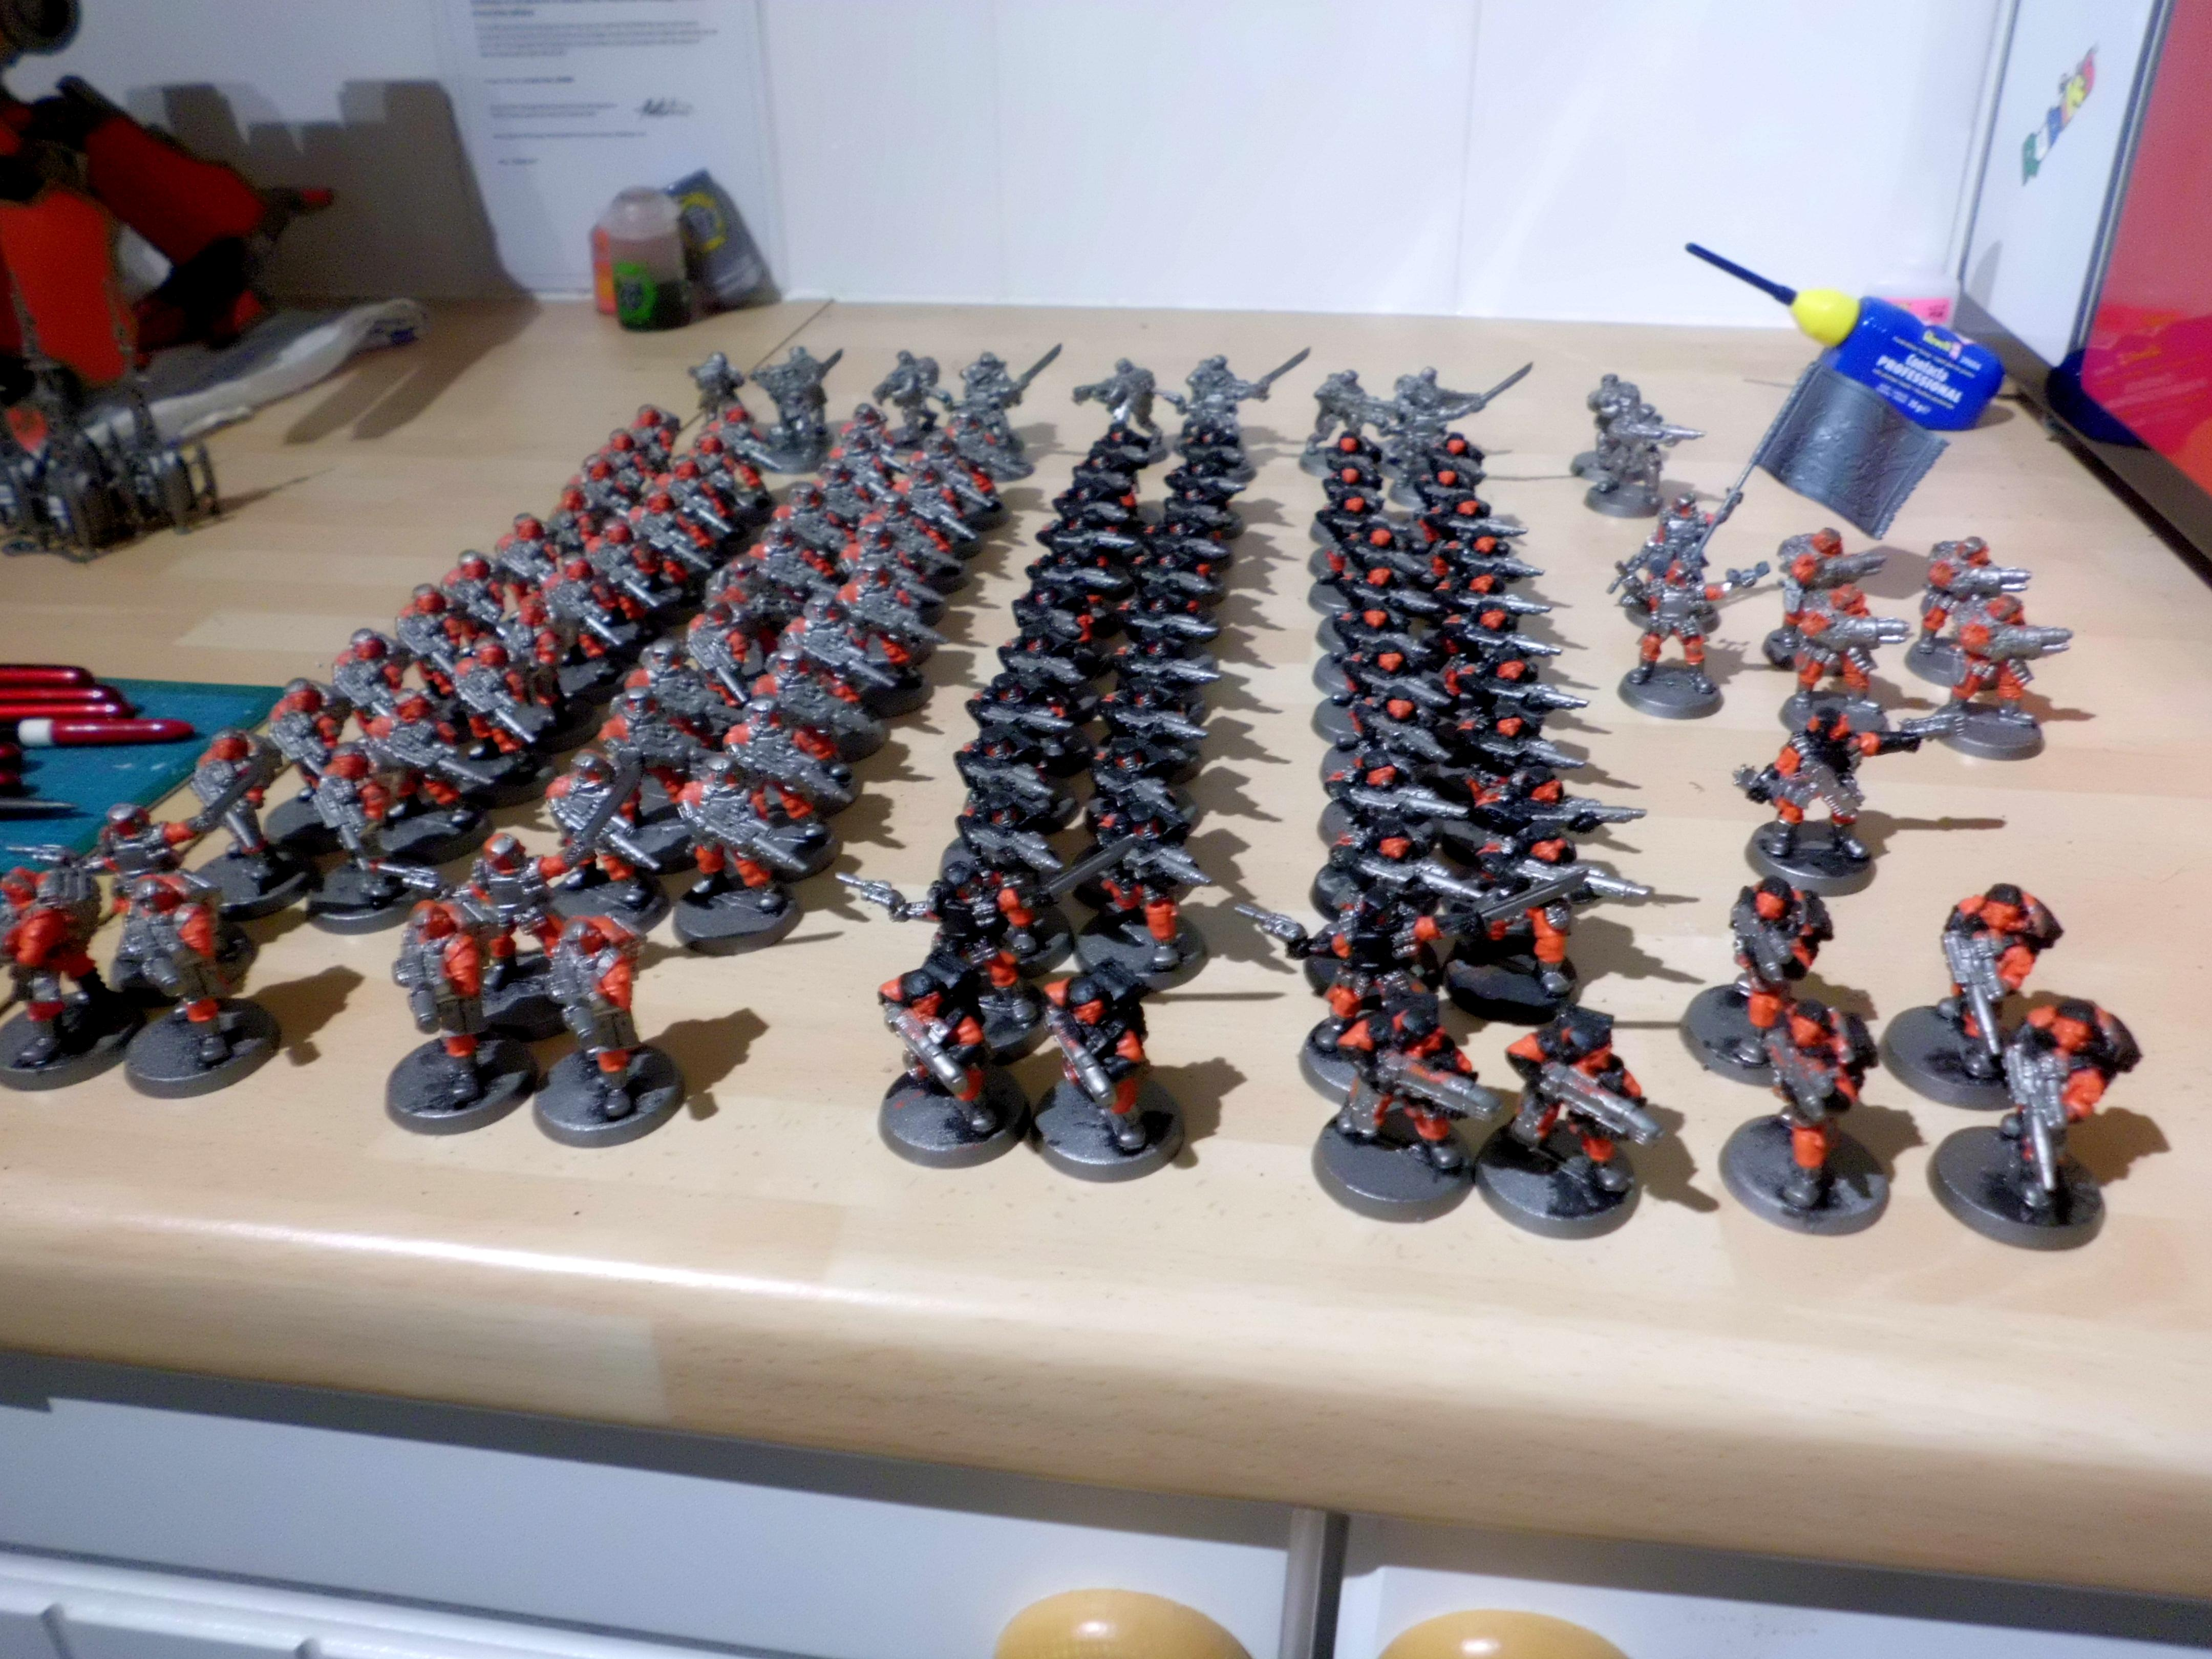 30k, Cults & Militia, Grenadiers, Horus Heresy, Storm Troopers, Tech Thrall, Tech-thralls